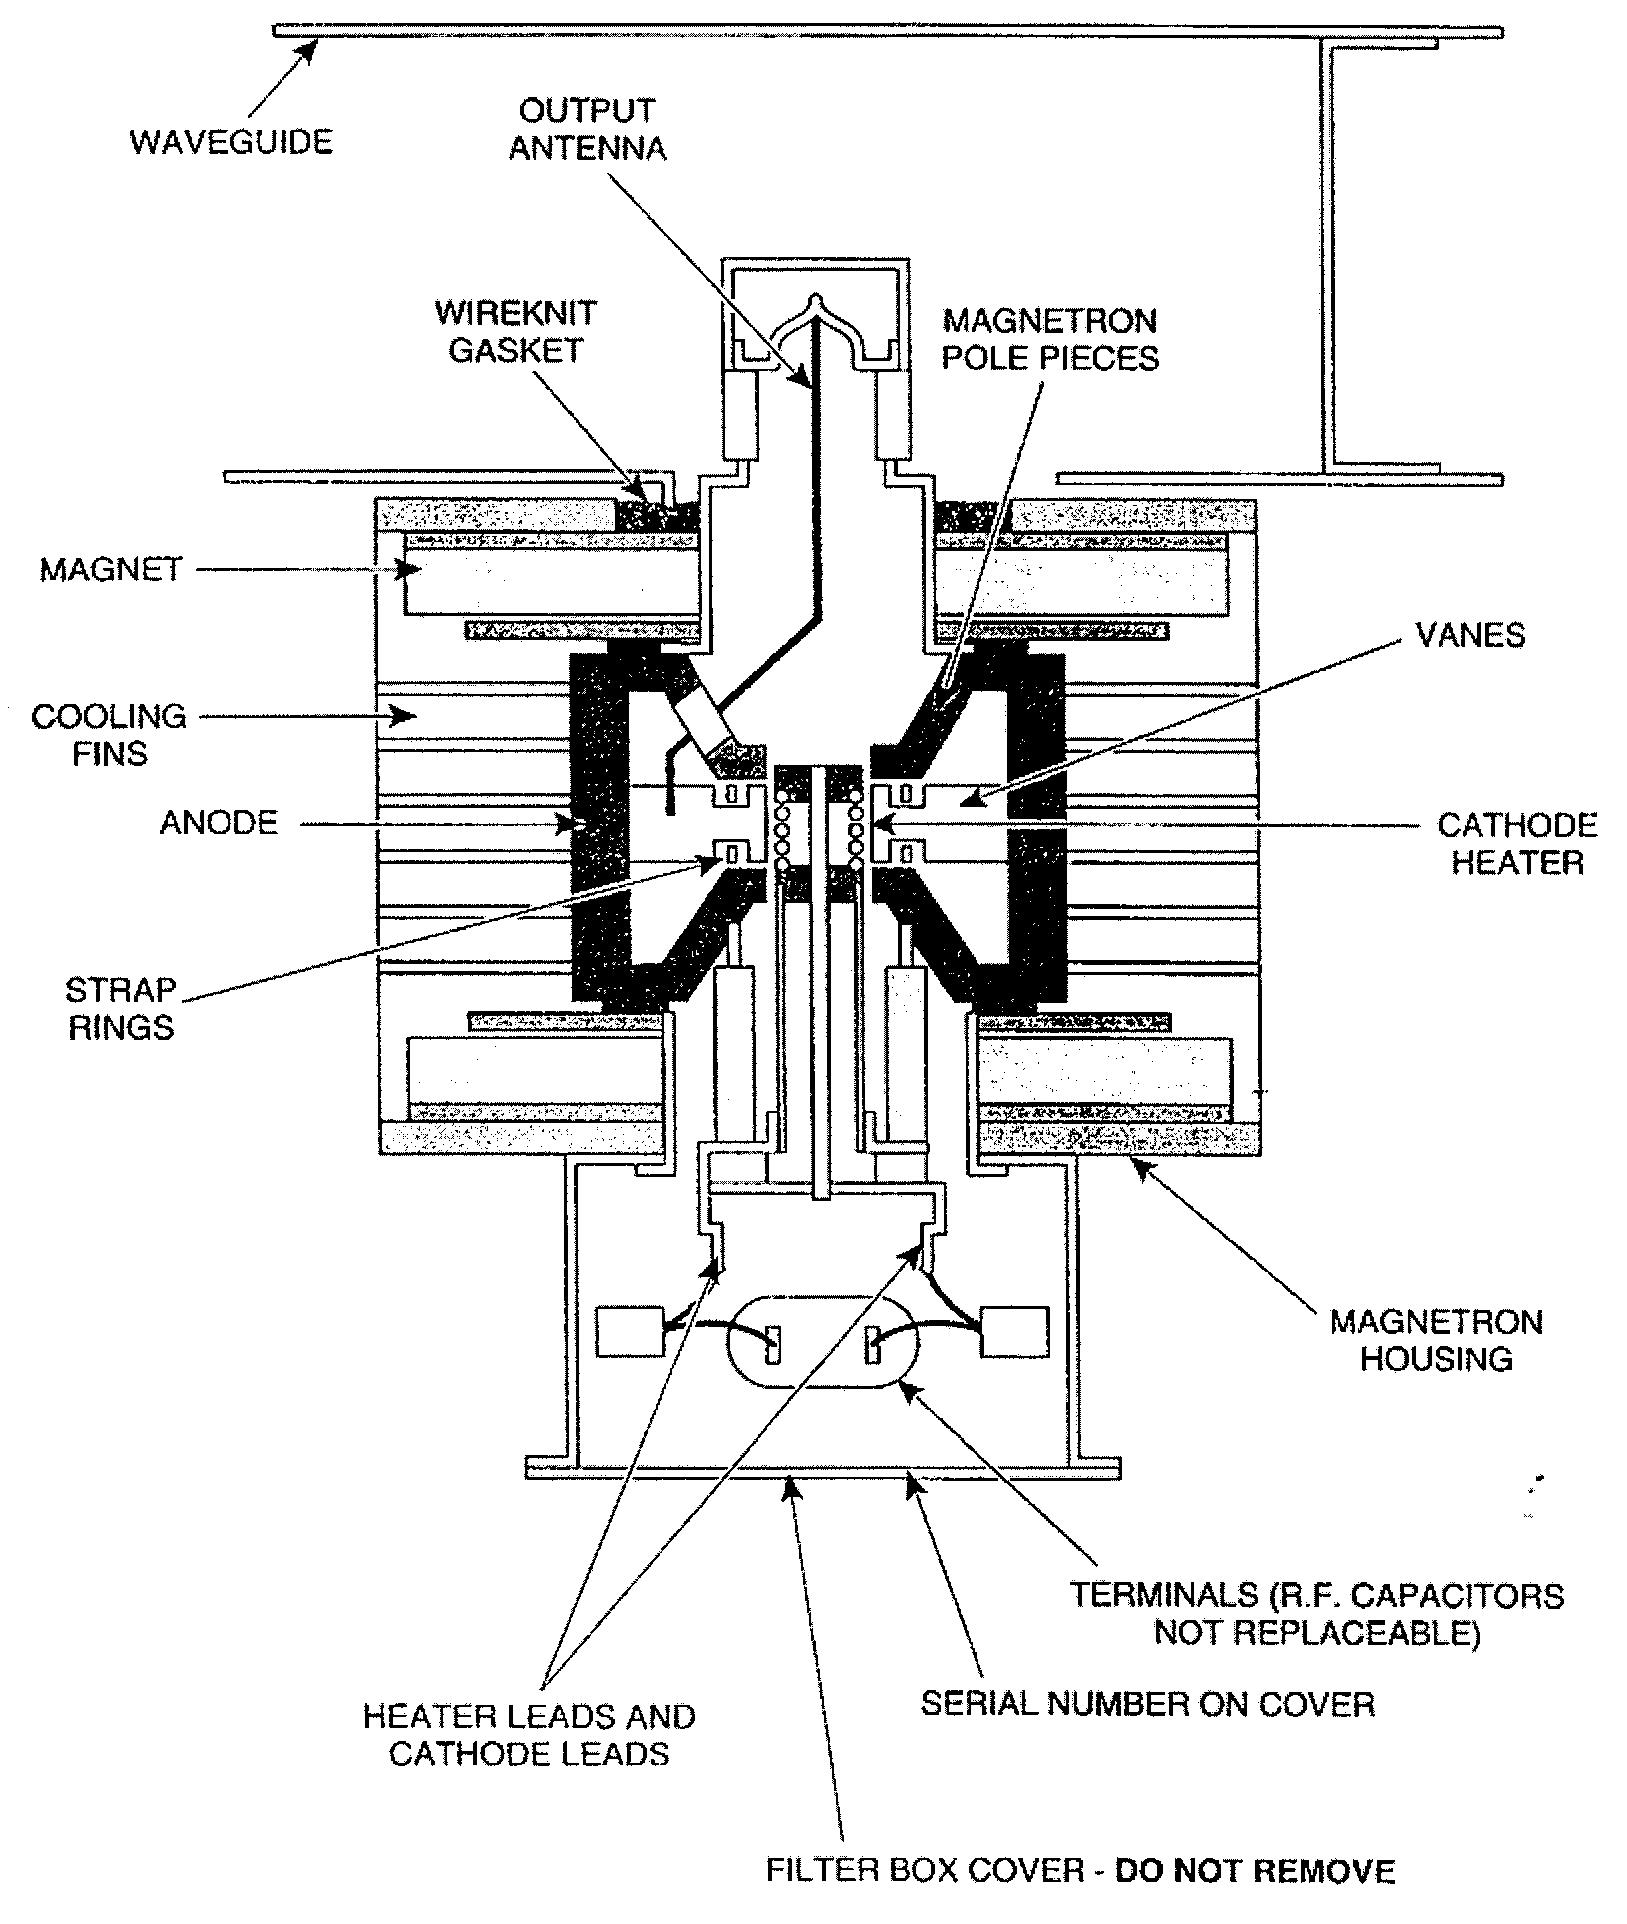 ohmmeter  ohmmeter theory